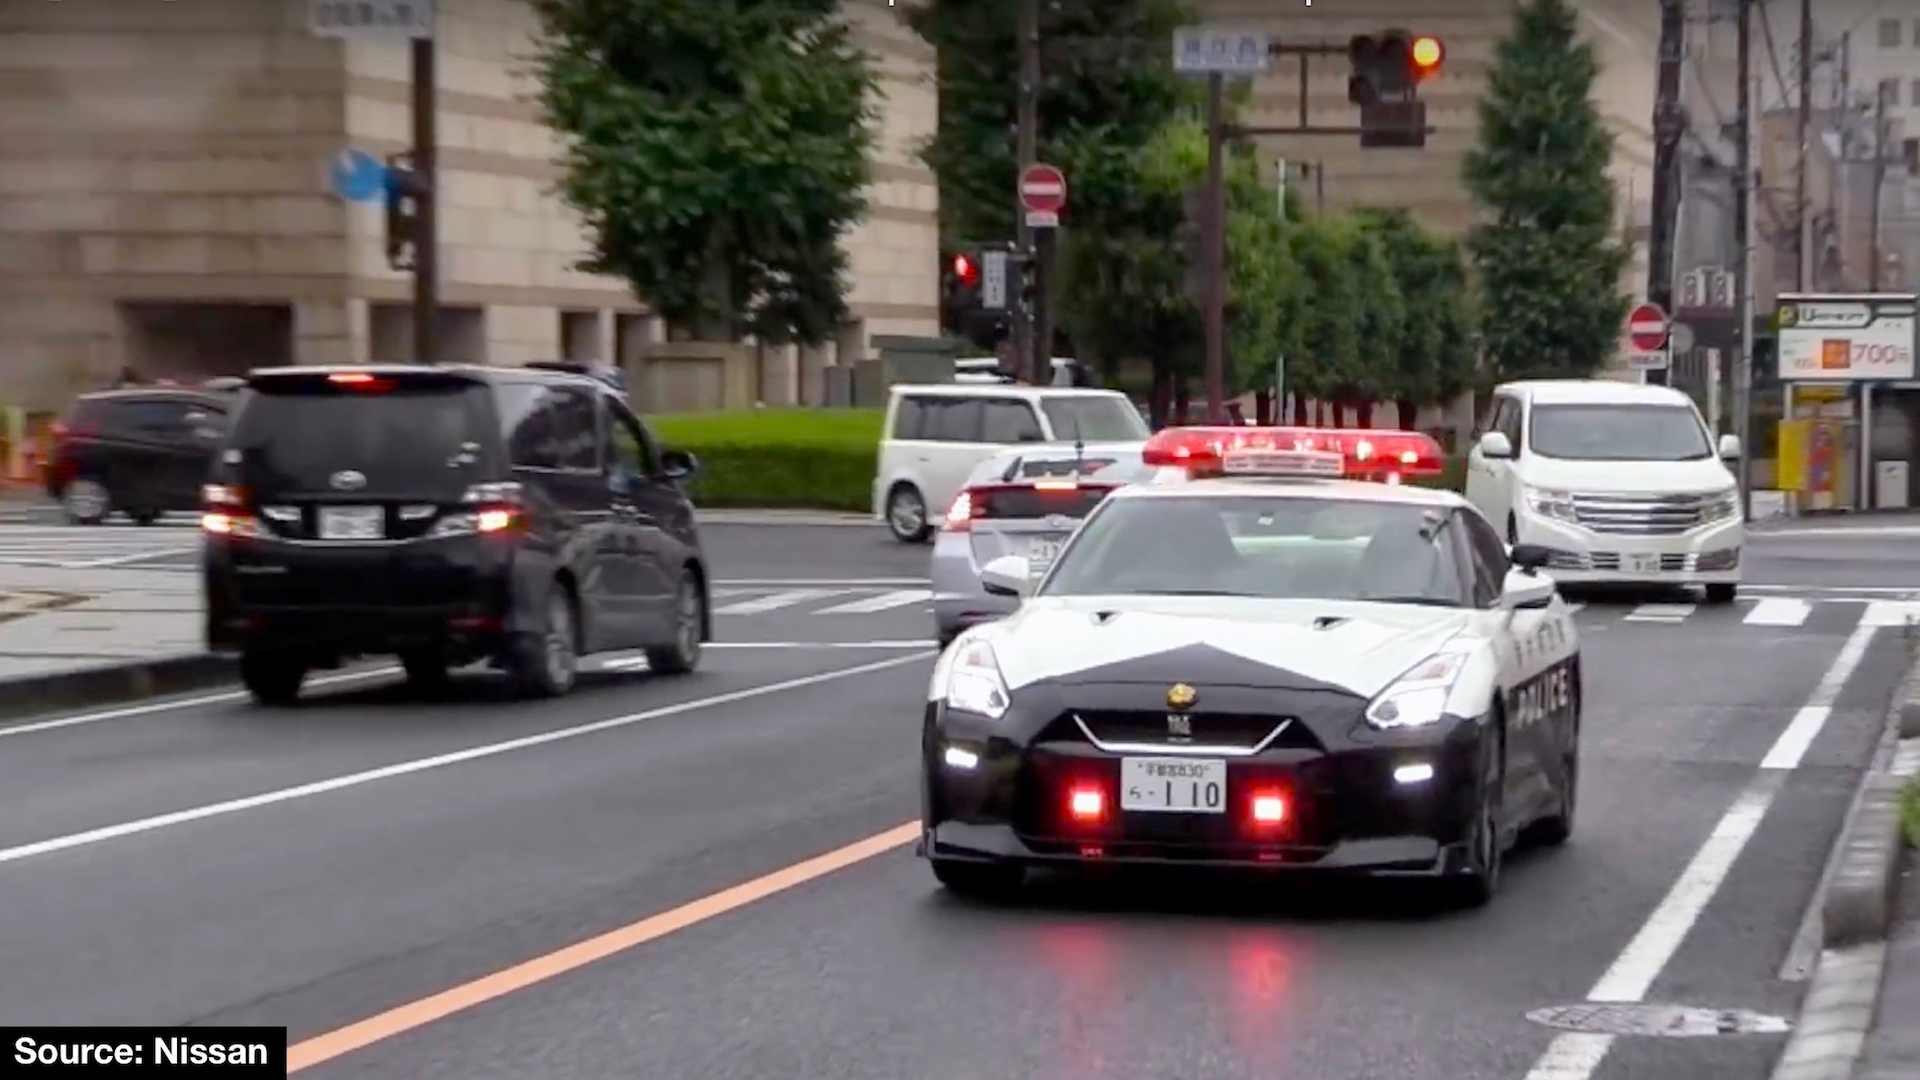 Nissan R35 Gt R Joins The Force In Tochigi The Coolest Police Car